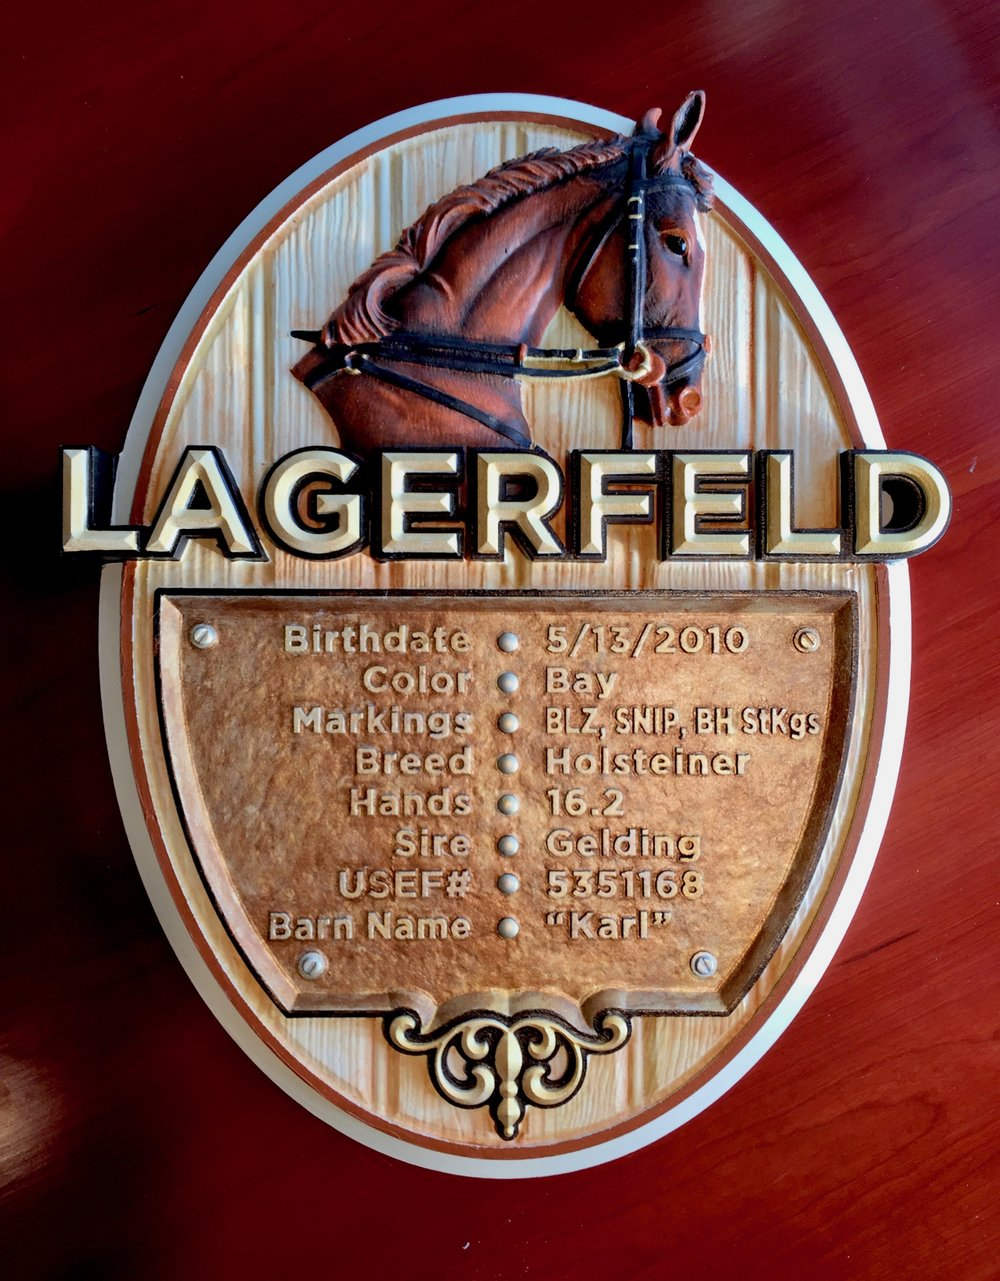 We just finished this custom carved sign in time for Christmas for one lucky little girl and her beloved horse Lagerfeld! I hope she enjoys receiving it as much as we enjoyed making it. We pulled out all the stops incorporatingan array of faux painting techniques along with fully carved models to create this stunning dimensionalsign